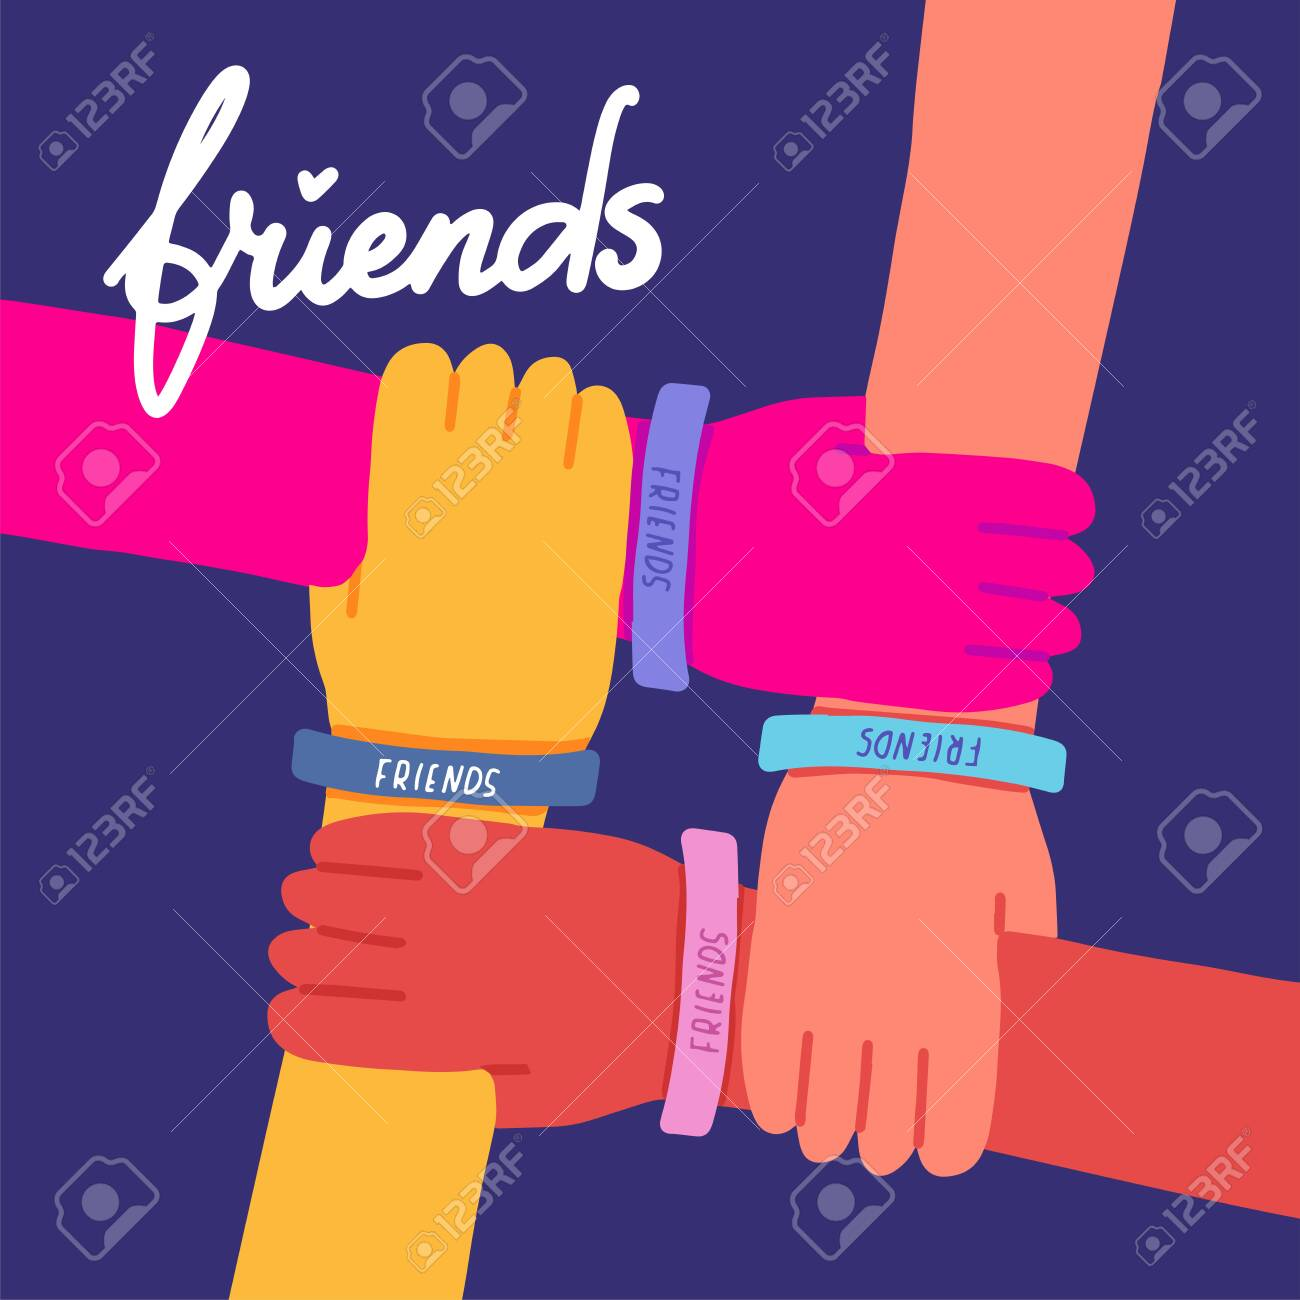 Happy friendship day illustration. Colorful four hands crossed together on dark blue background. Vector illustration of friendship with lettering text Friends.Holiday of togetherness, unity,having fun - 127128280